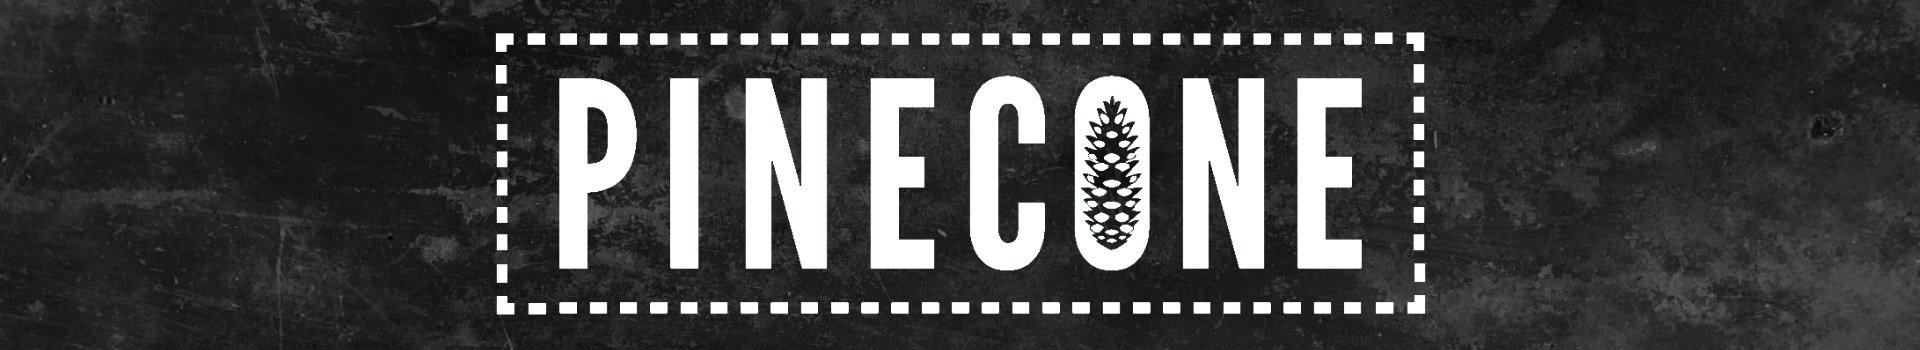 Pinecone Records - Official Merchandise